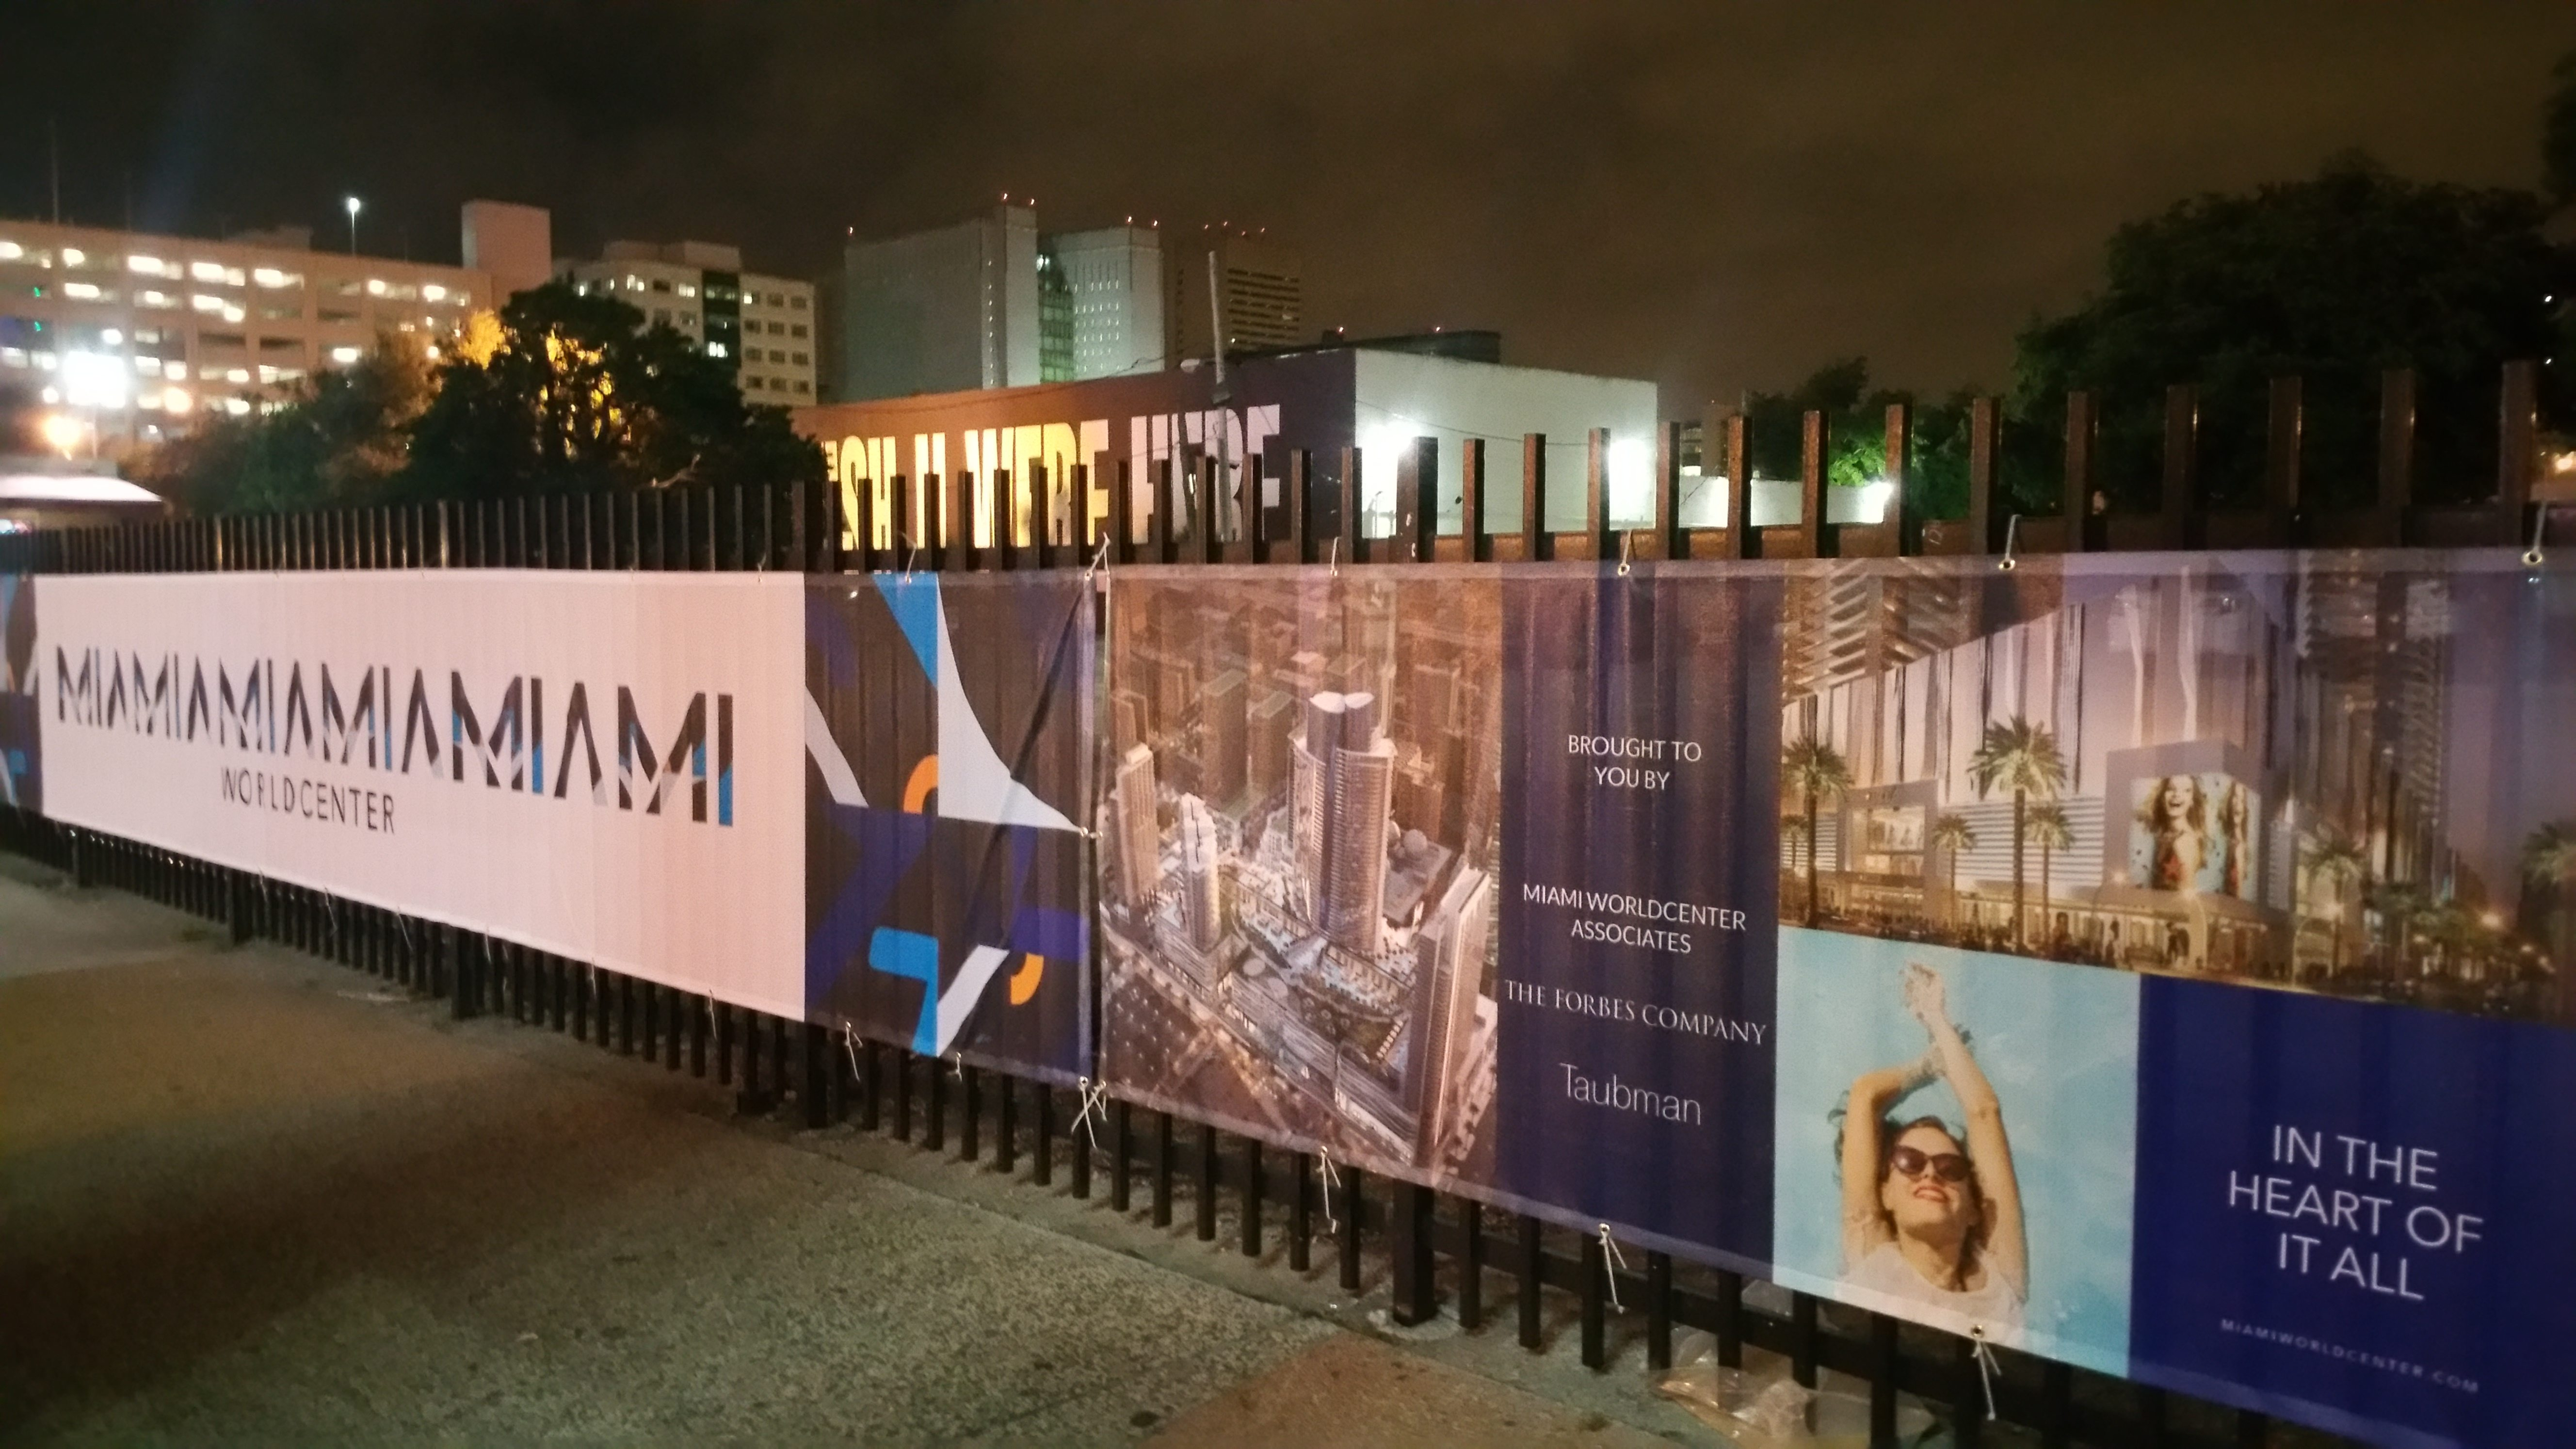 Miami Worldcenter banners